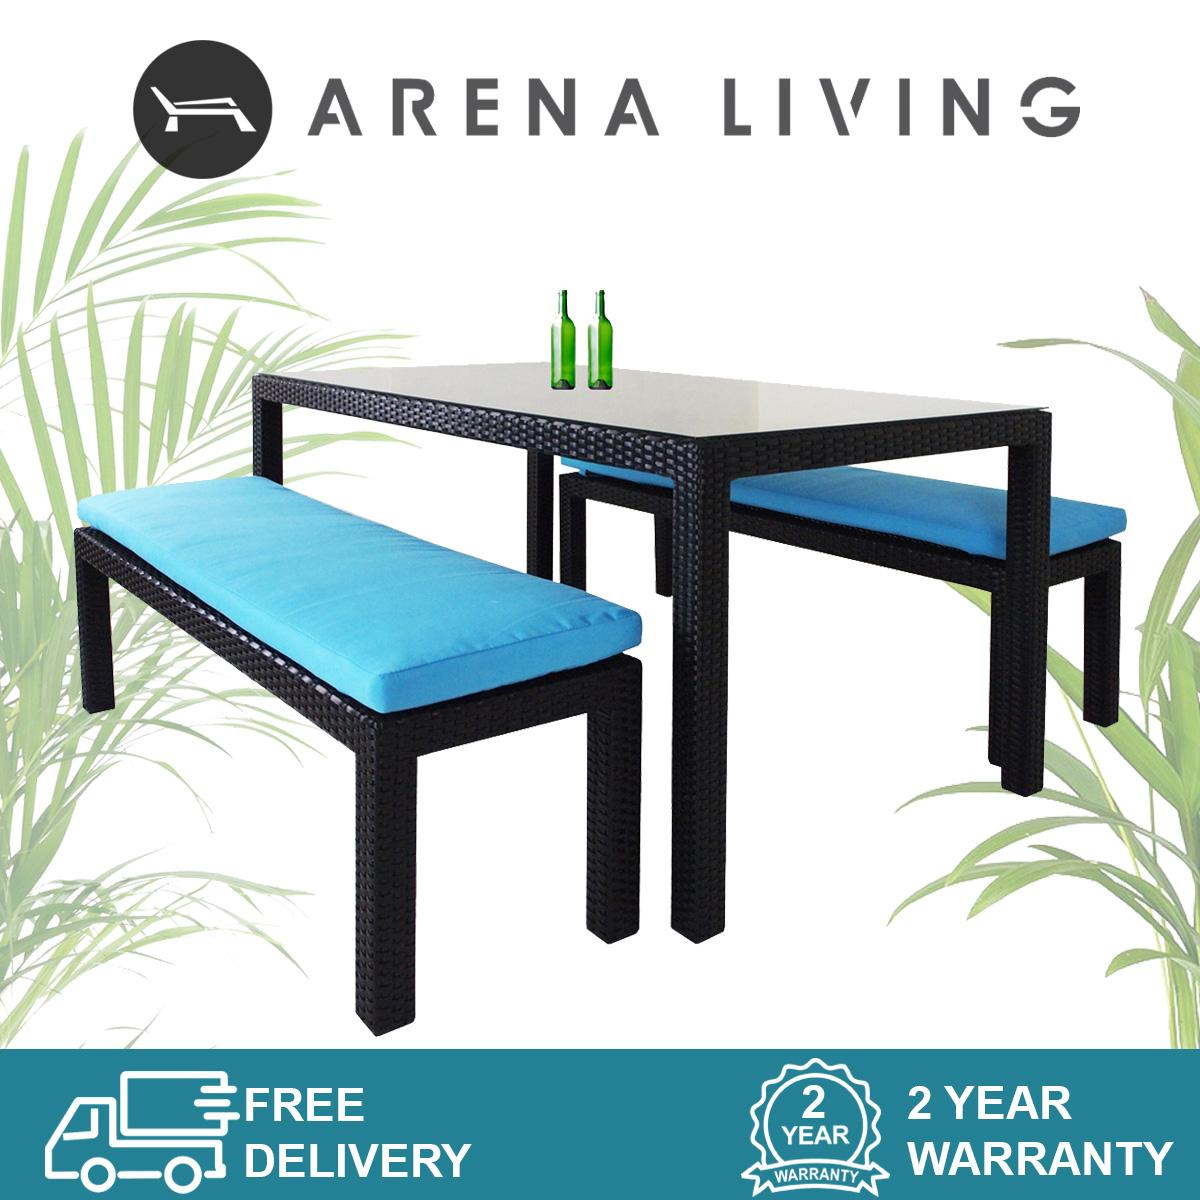 Bondi 2 Bench Dining Set Blue Cushion, Outdoor Furniture by Arena Living